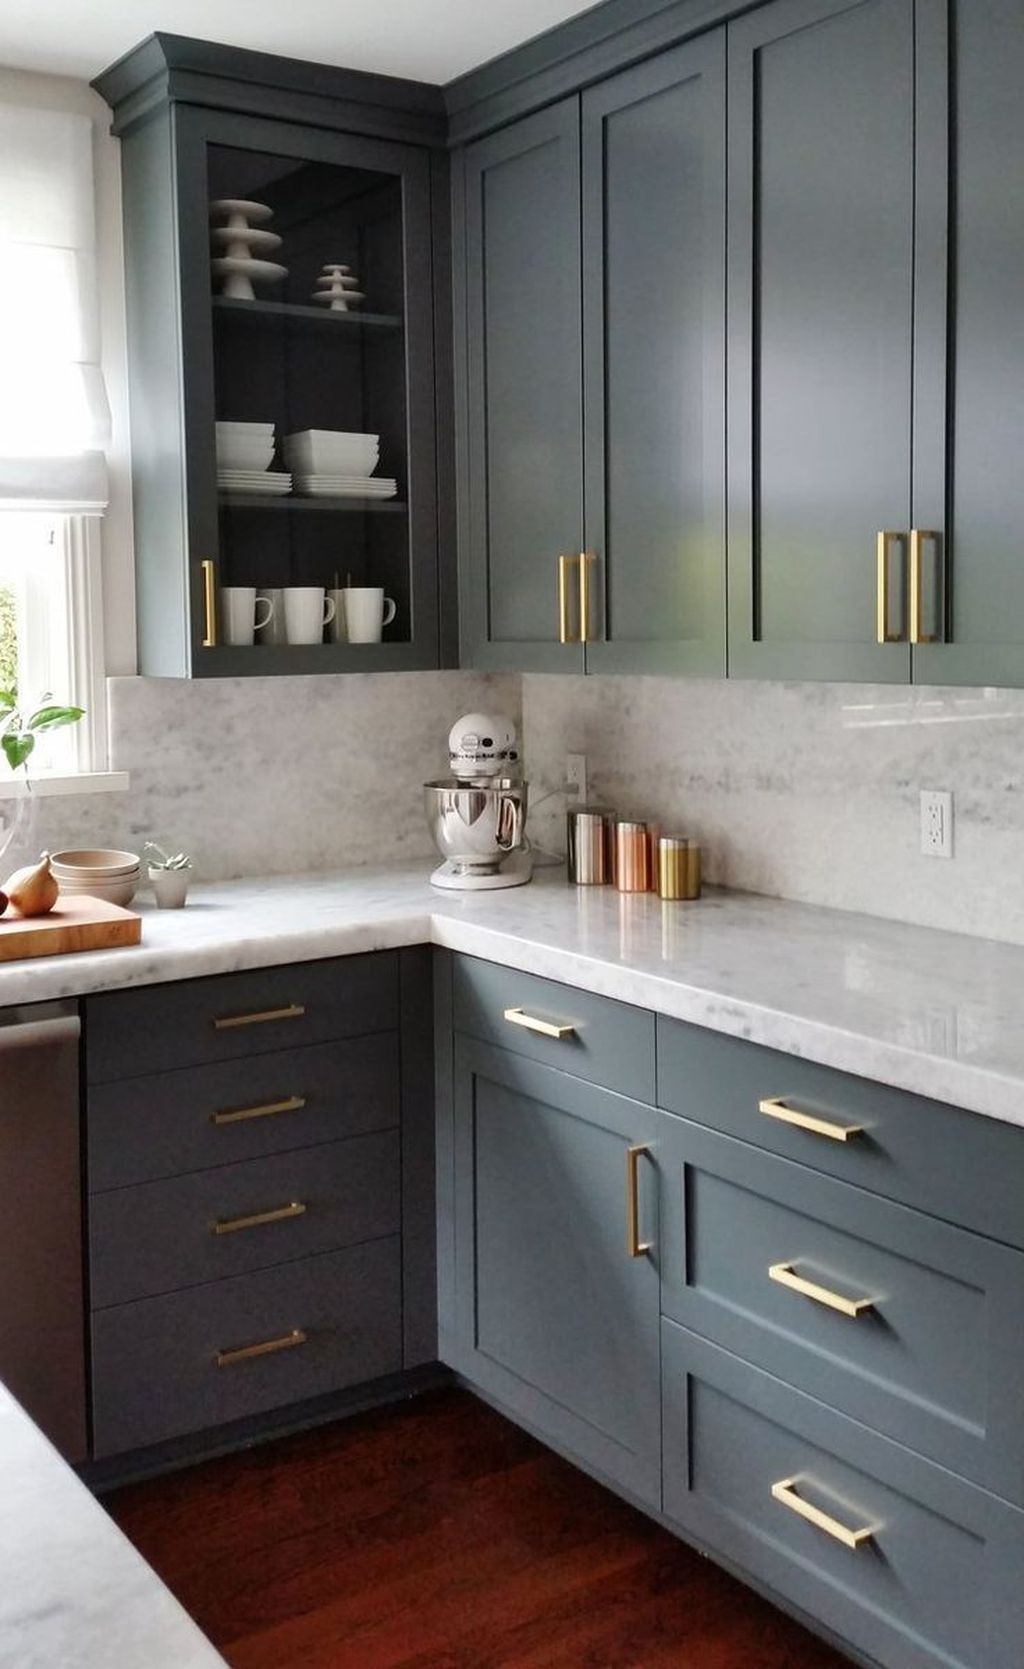 39 Creative Gray Kitchen Cabinet Ideas - HOMYFEED